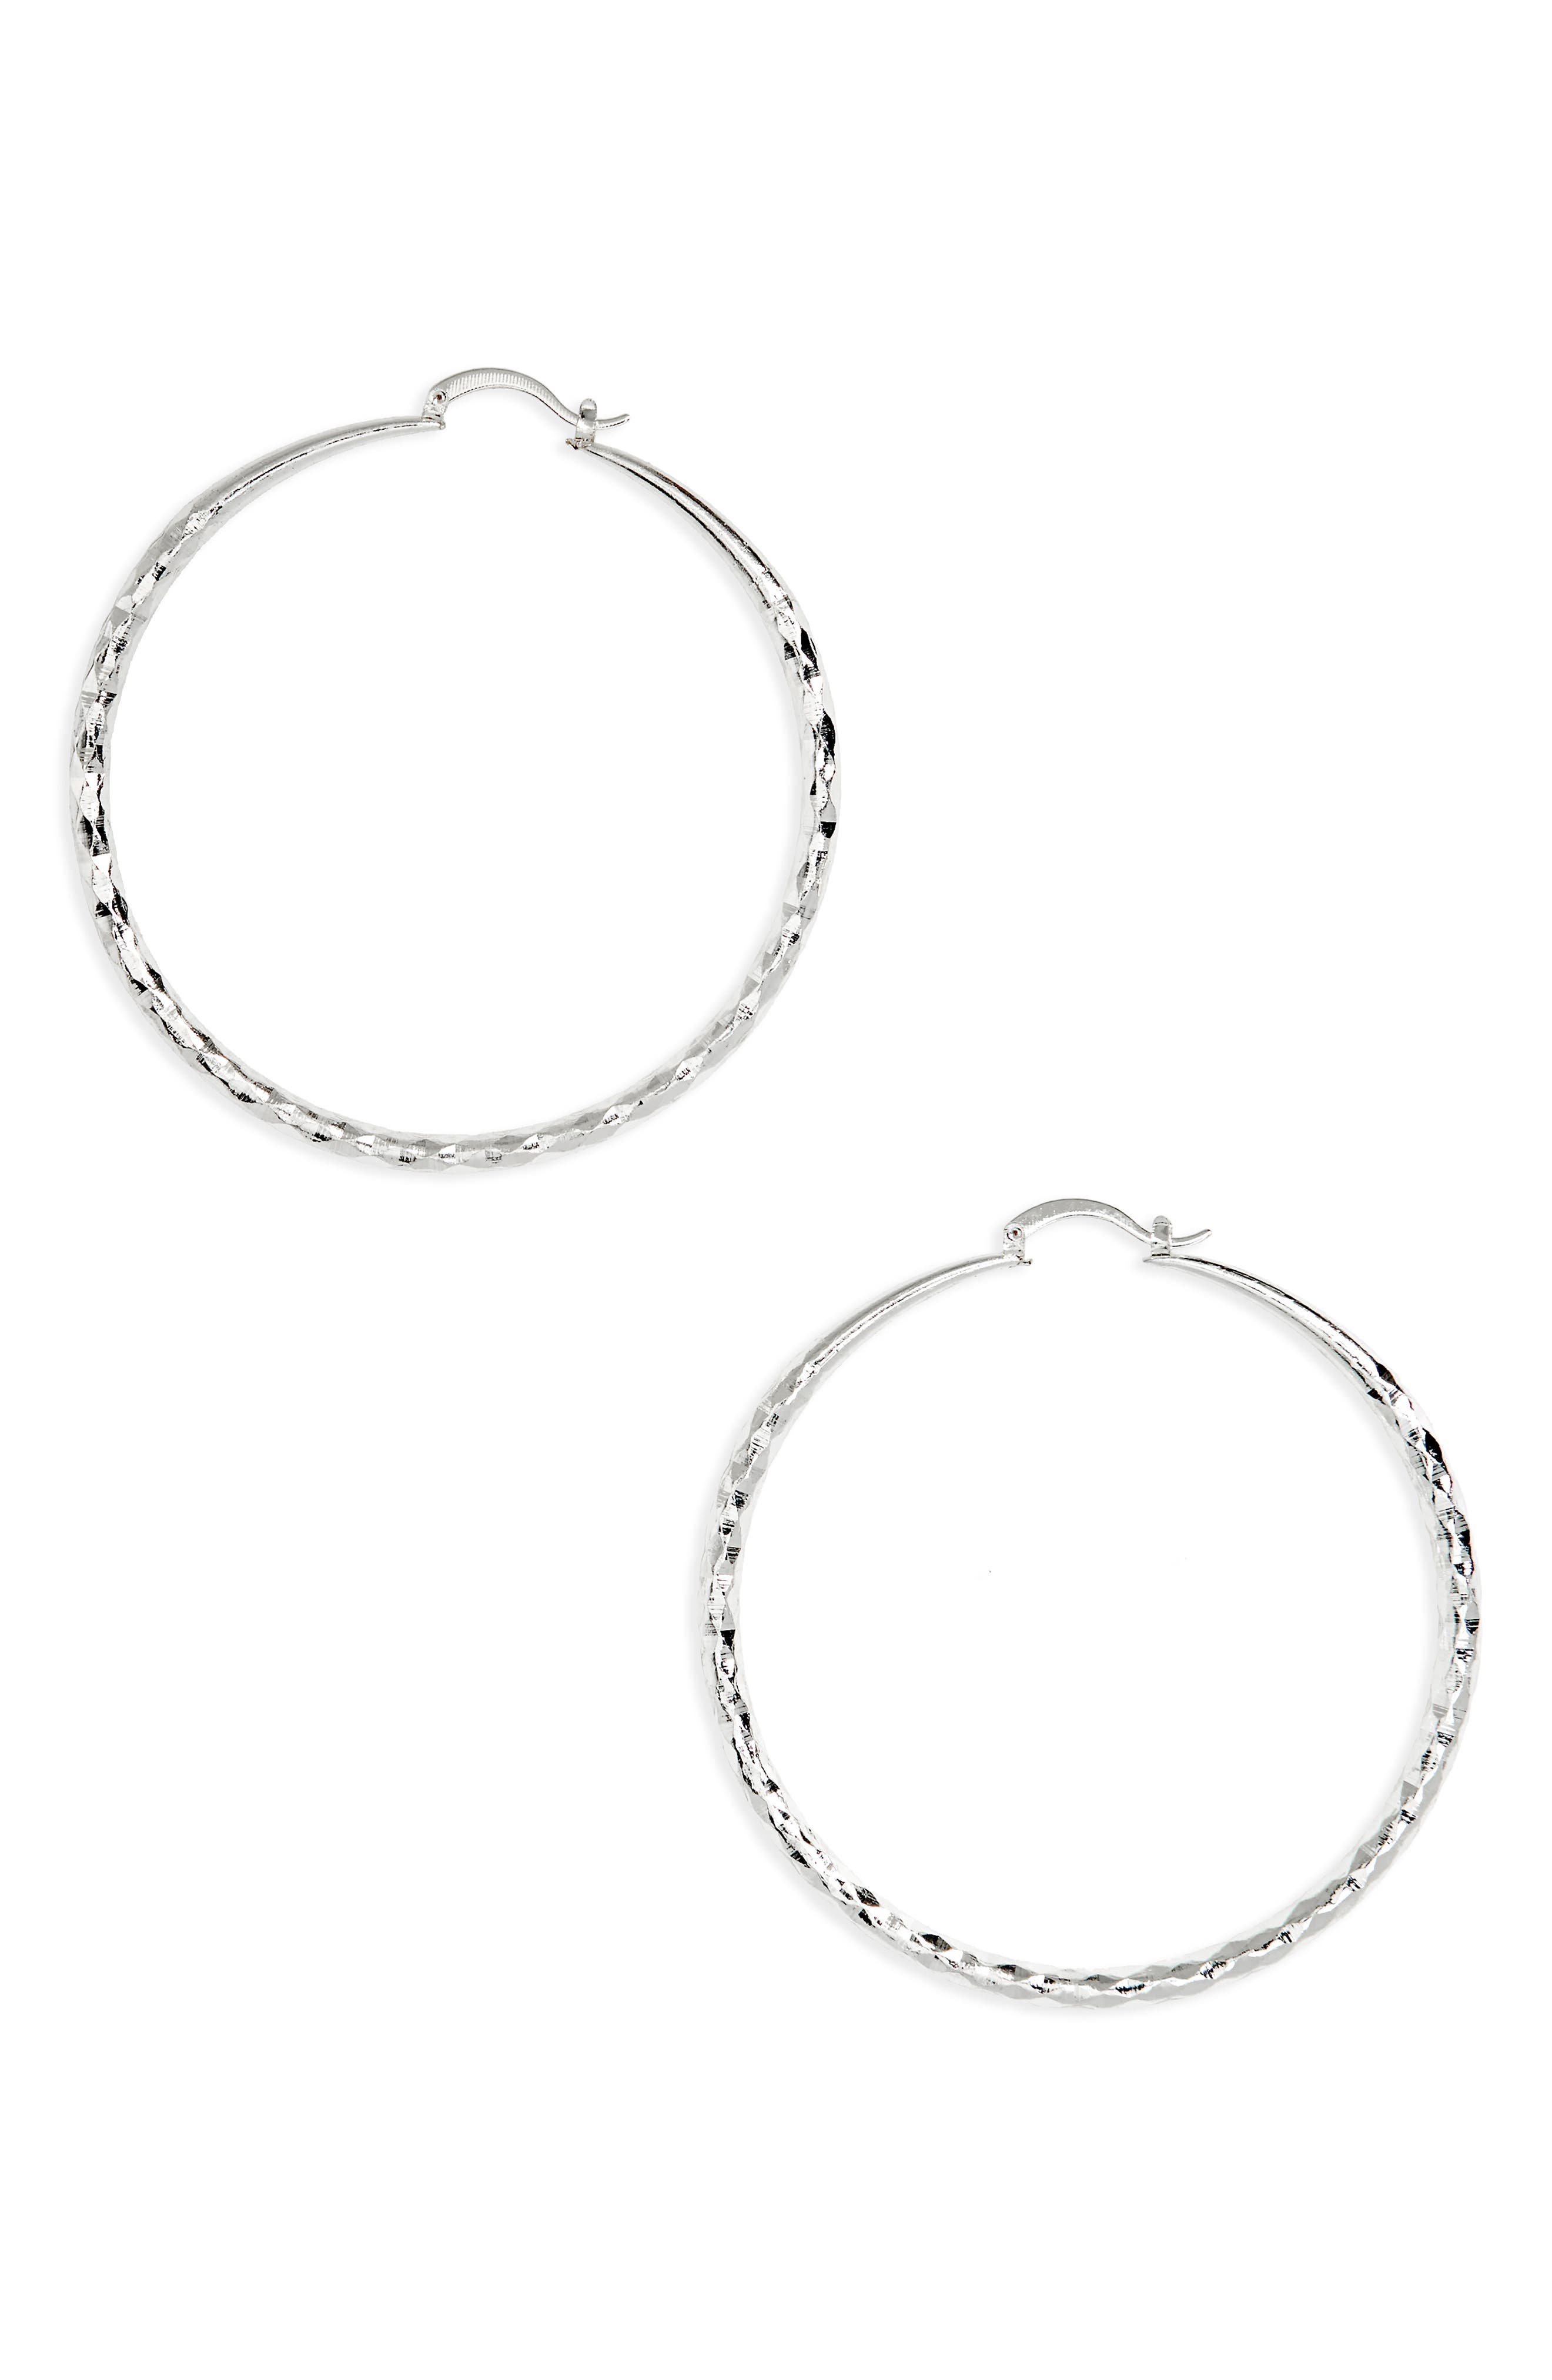 Oversized Textured Hoop Earrings,                             Main thumbnail 1, color,                             Silver